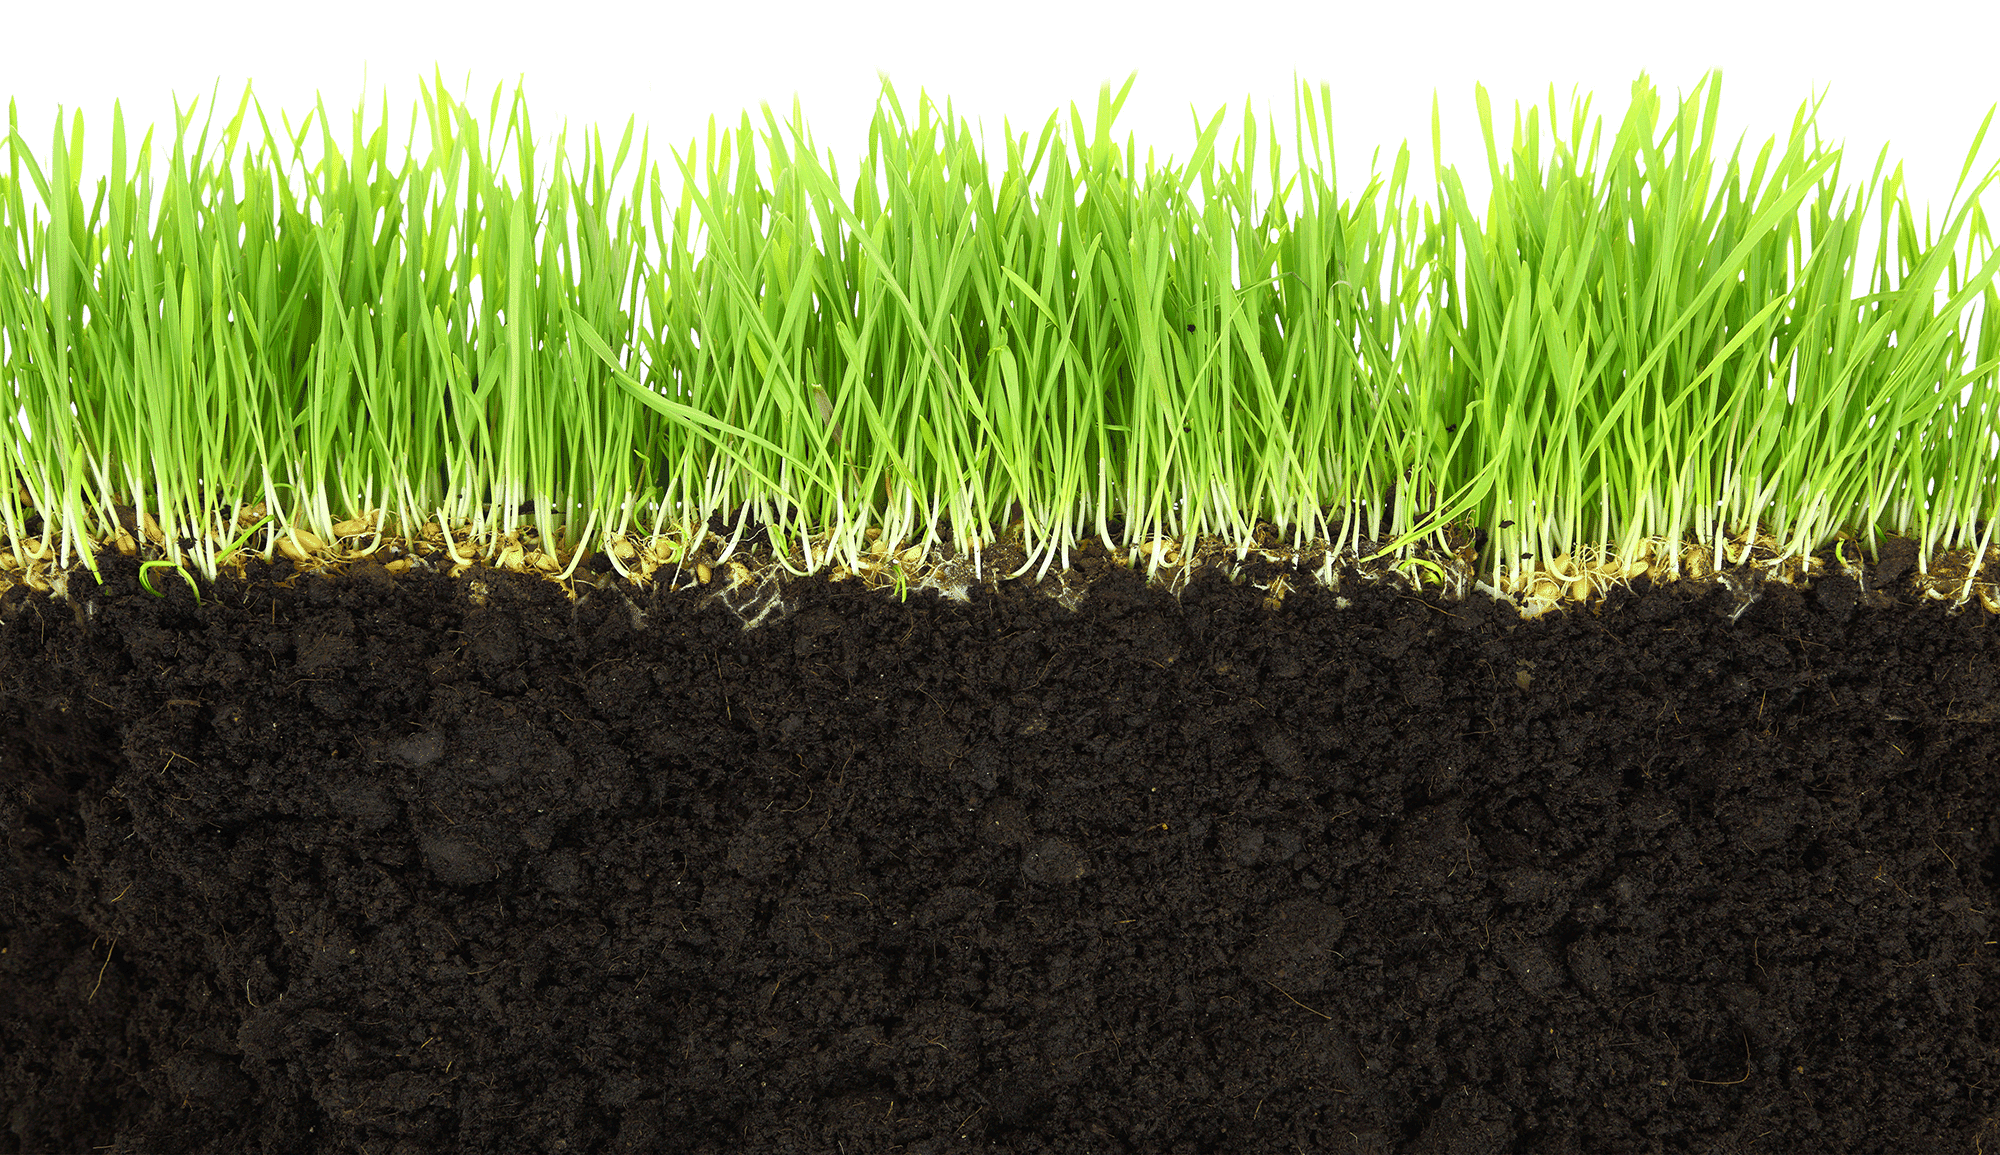 Grass and dirt crop quick environmental for Soil and green